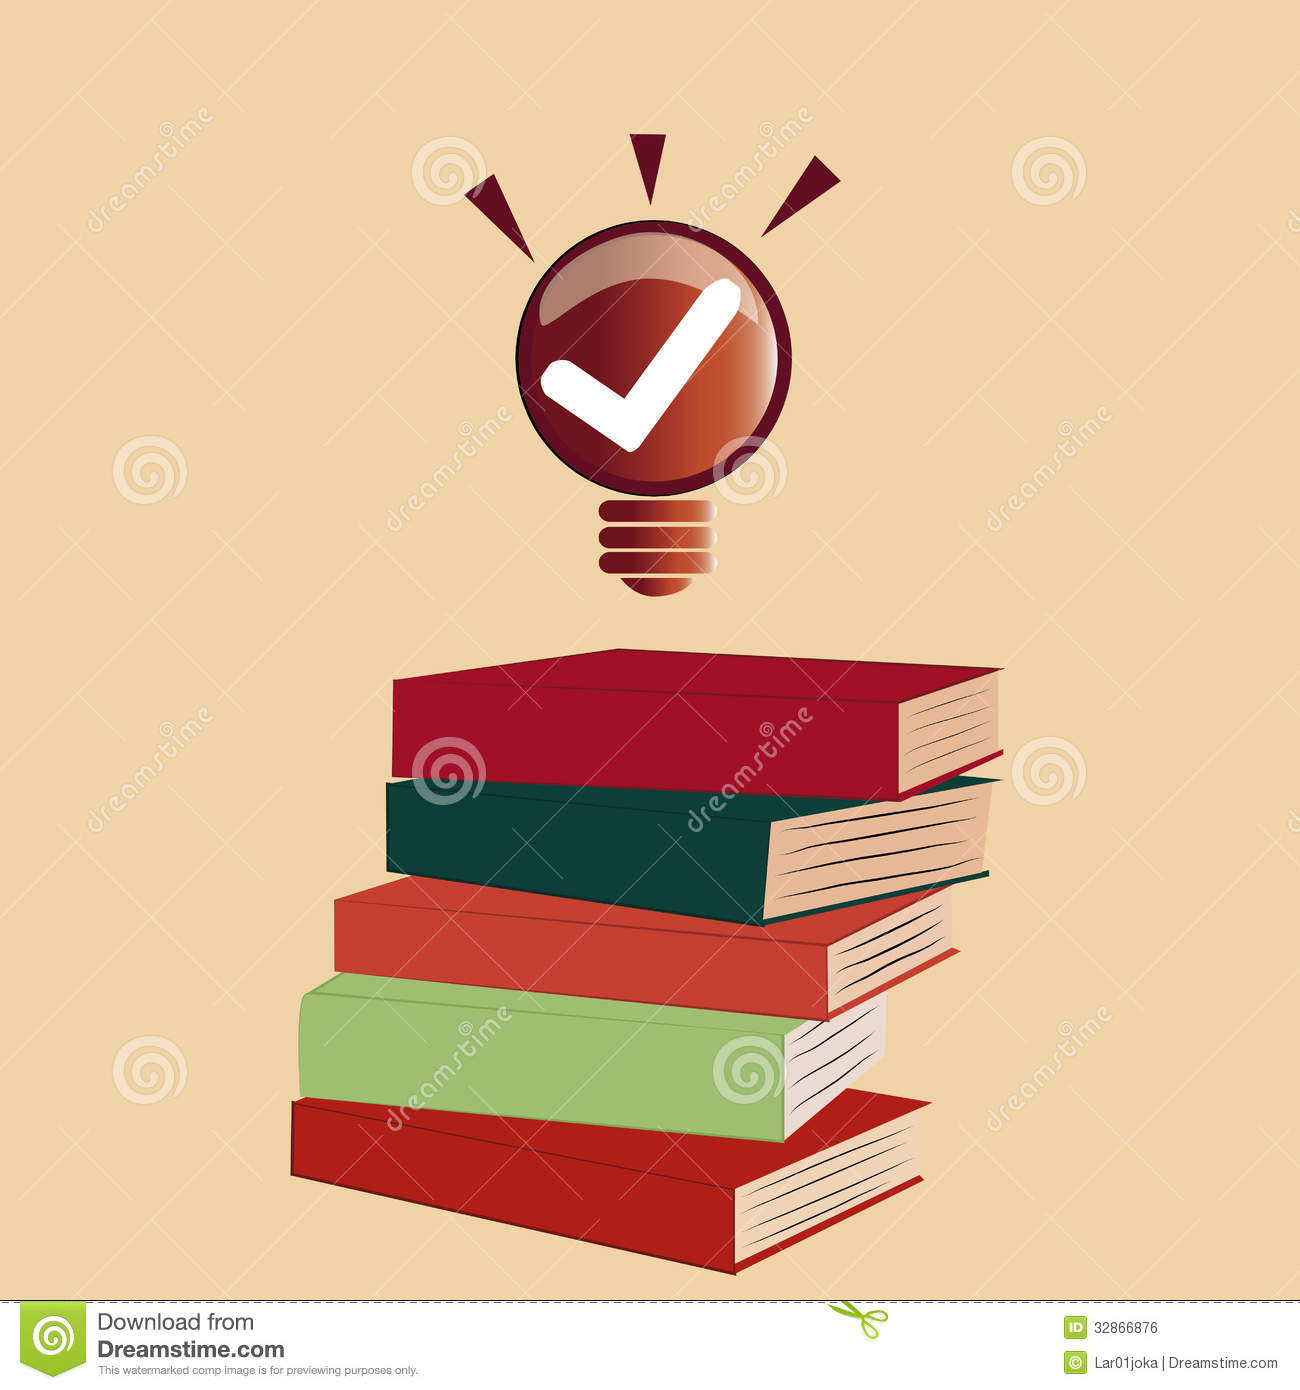 Check Out The Lights Over The: Ideas Coming Out From Books Royalty Free Stock Image